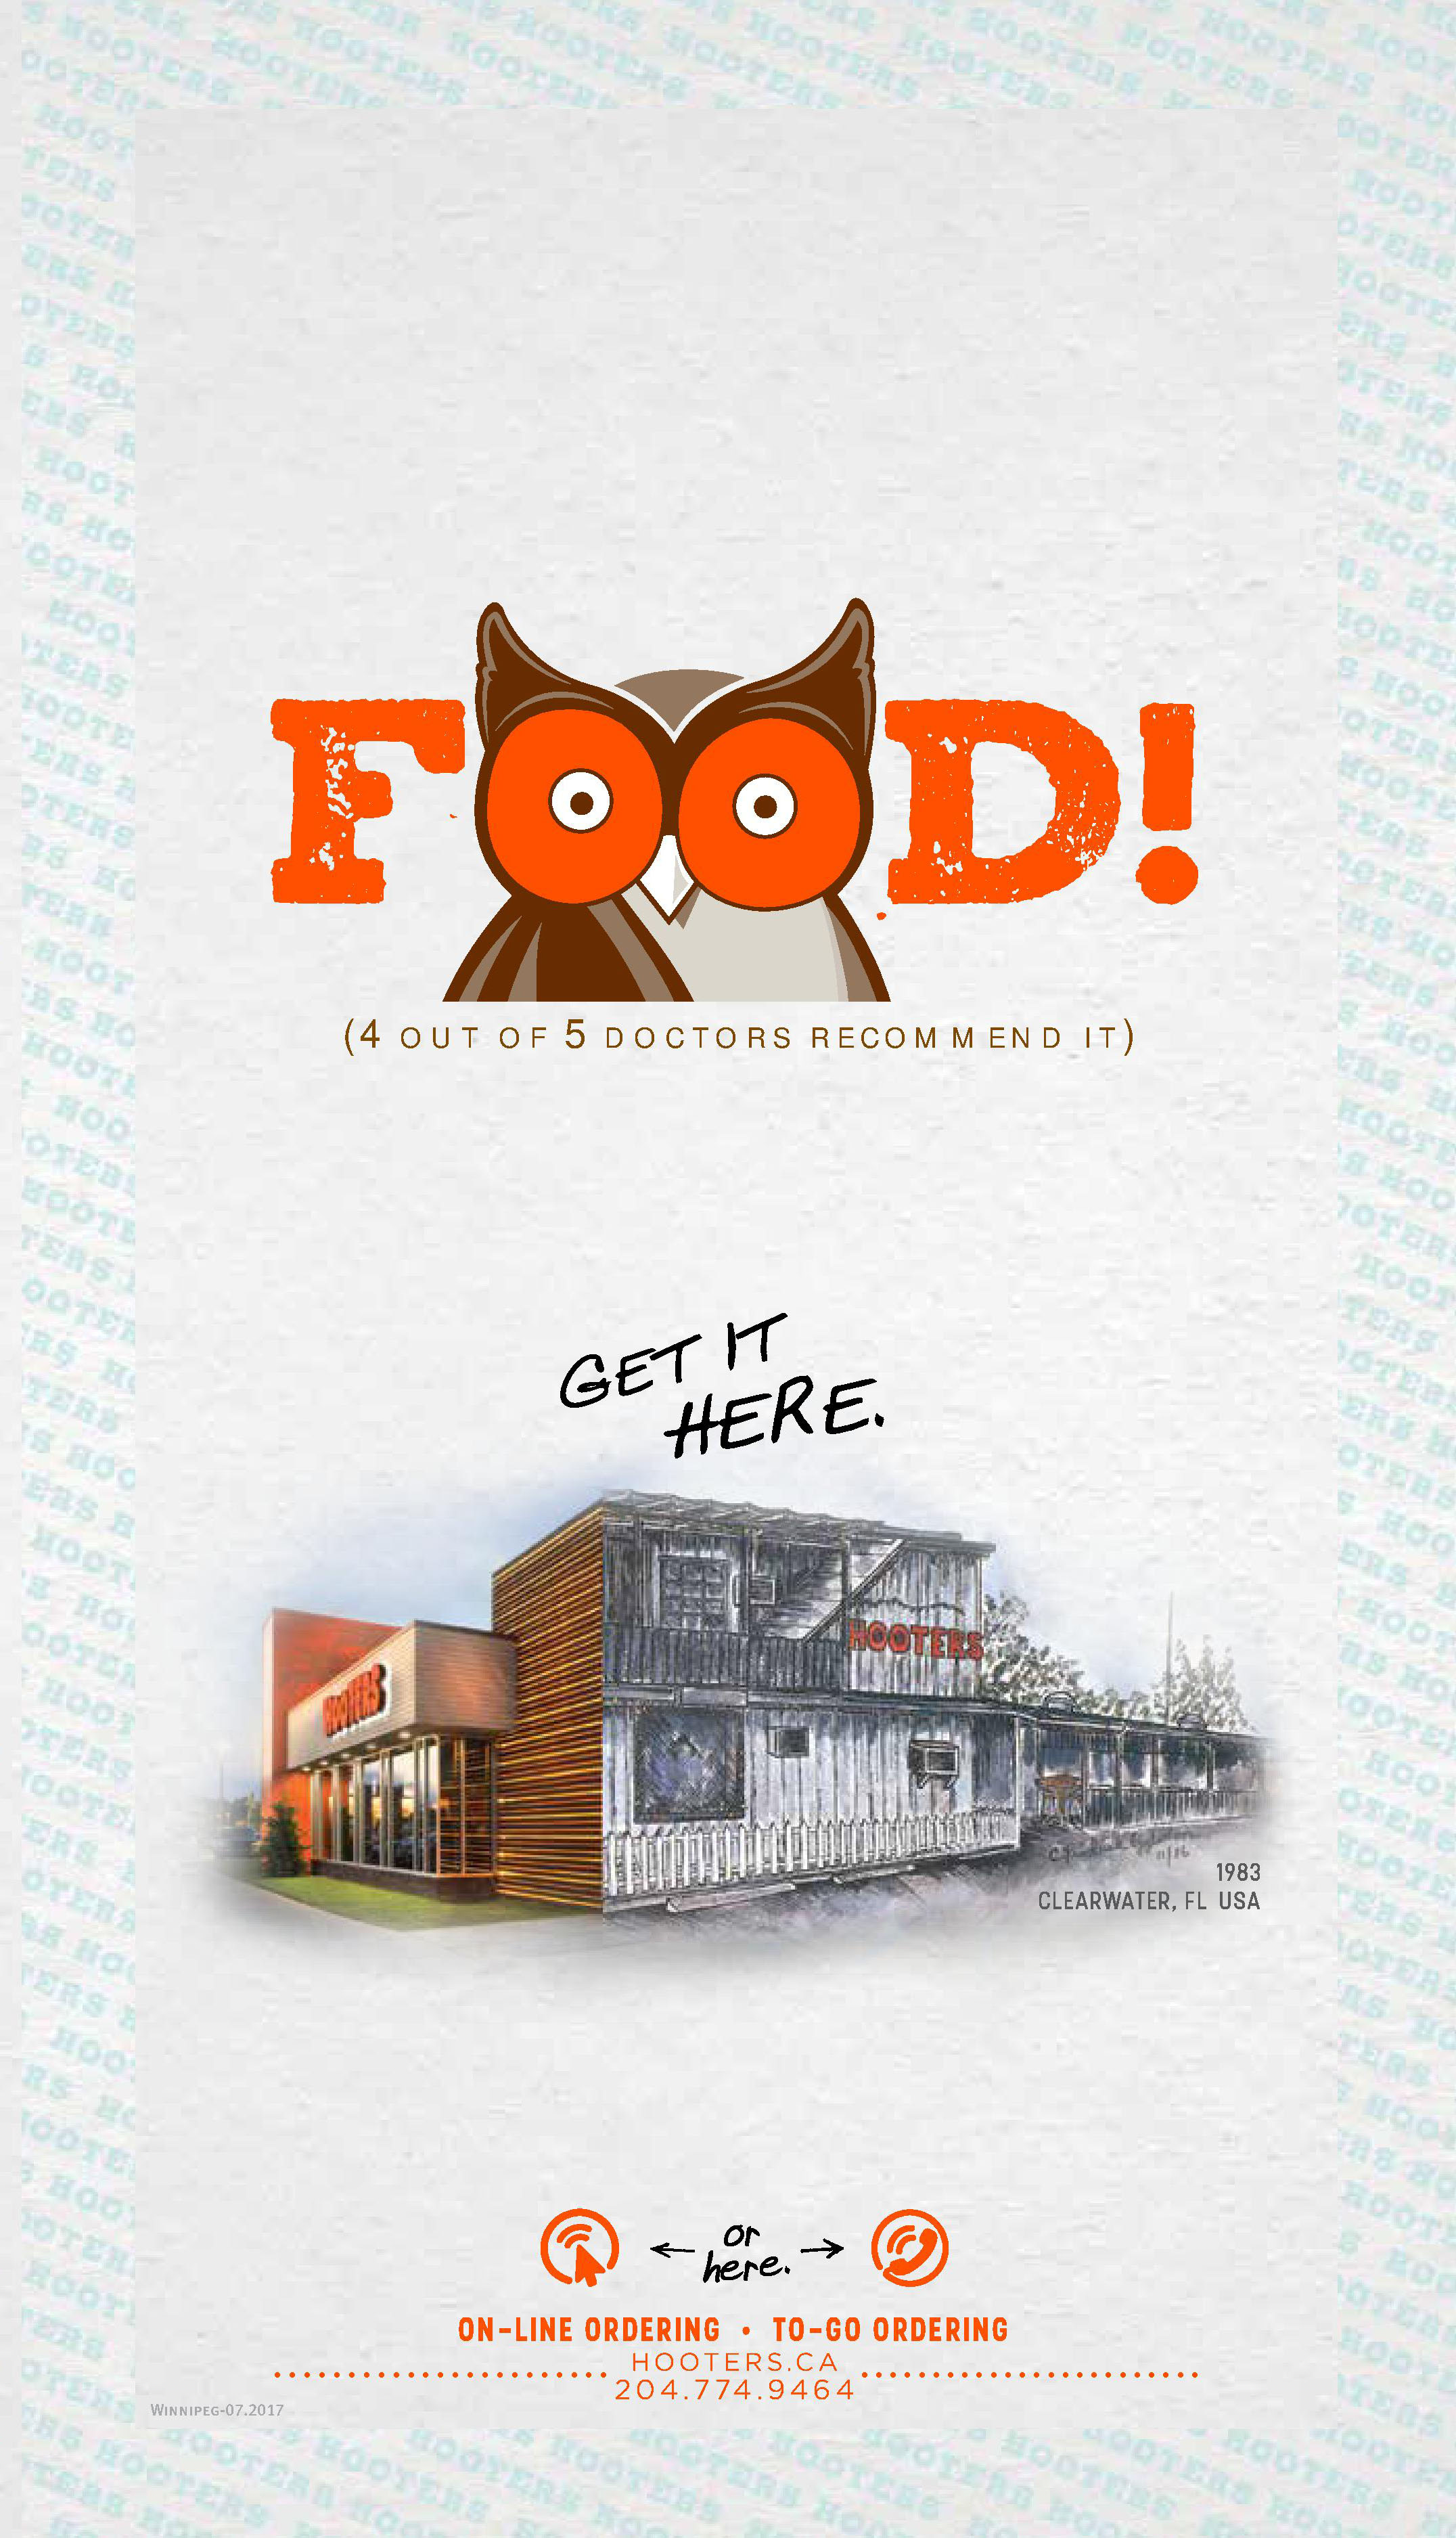 hooters-winnipeg-menu-01